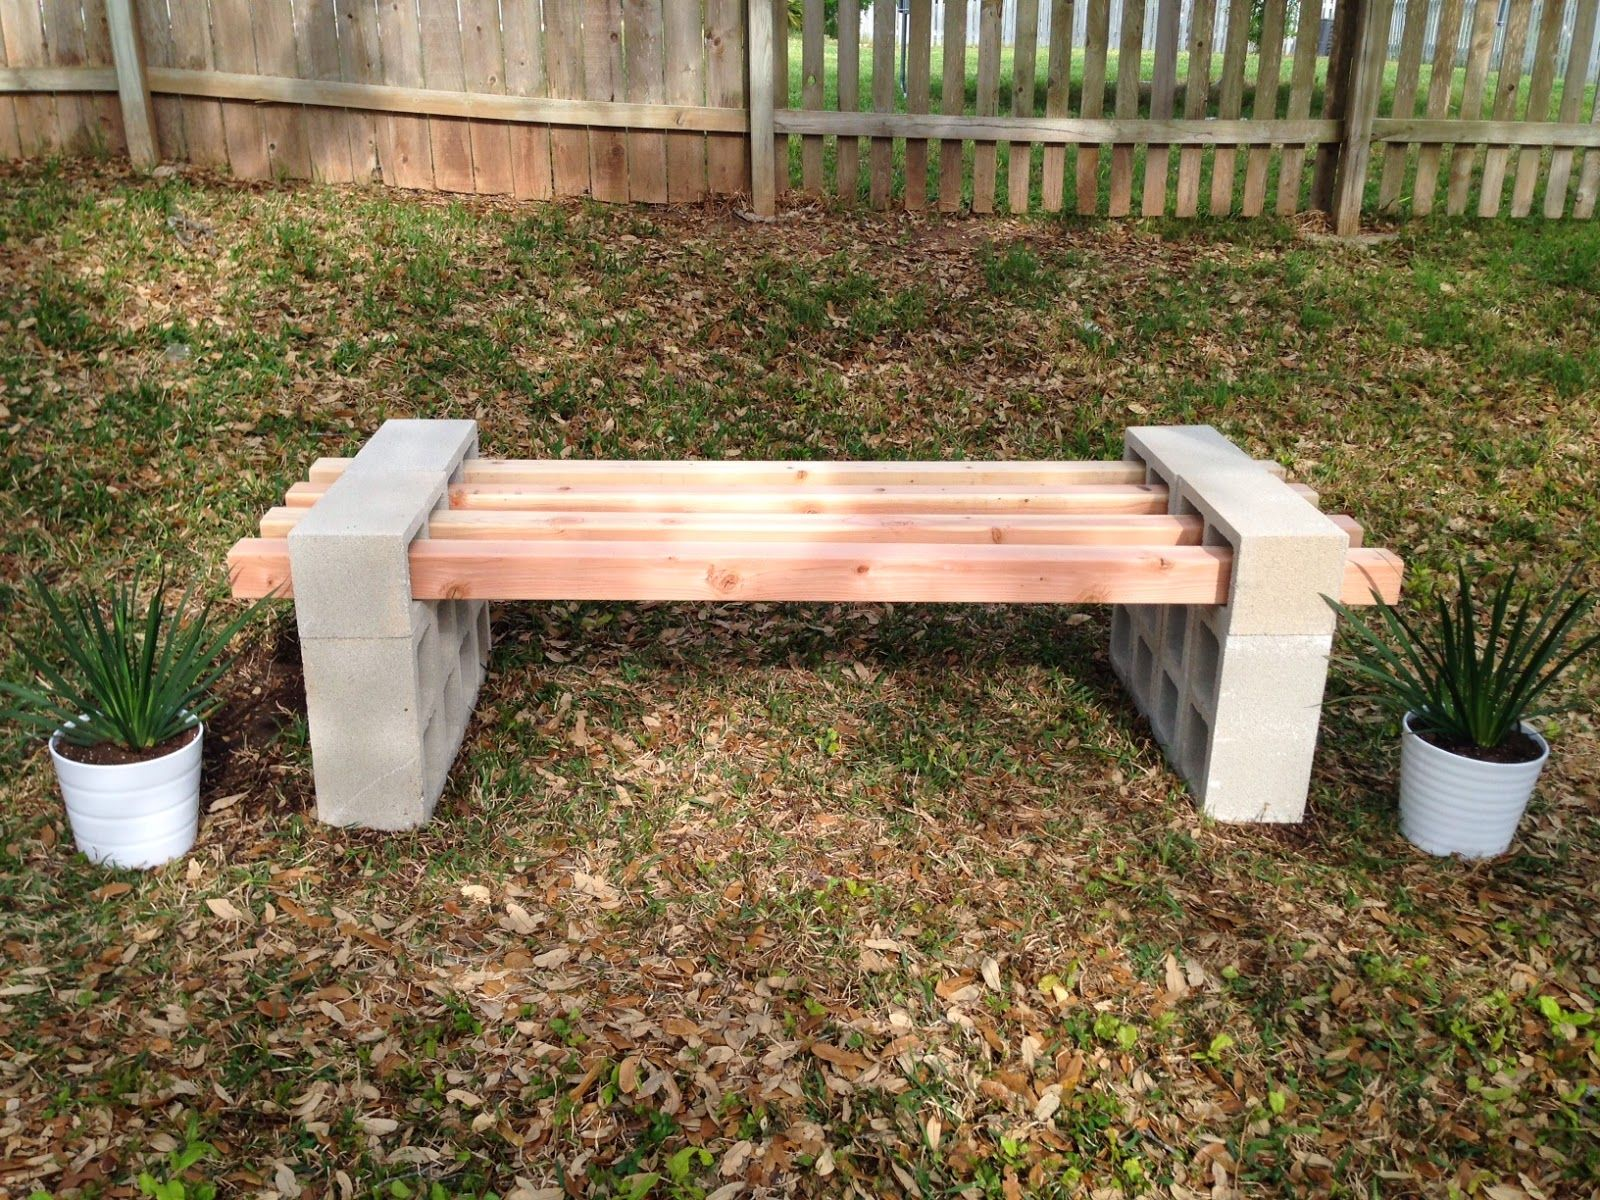 Diy cinder block bench project 12 cinder blocks and 4 4 x4 s make for a quick outdoor bench Yard bench